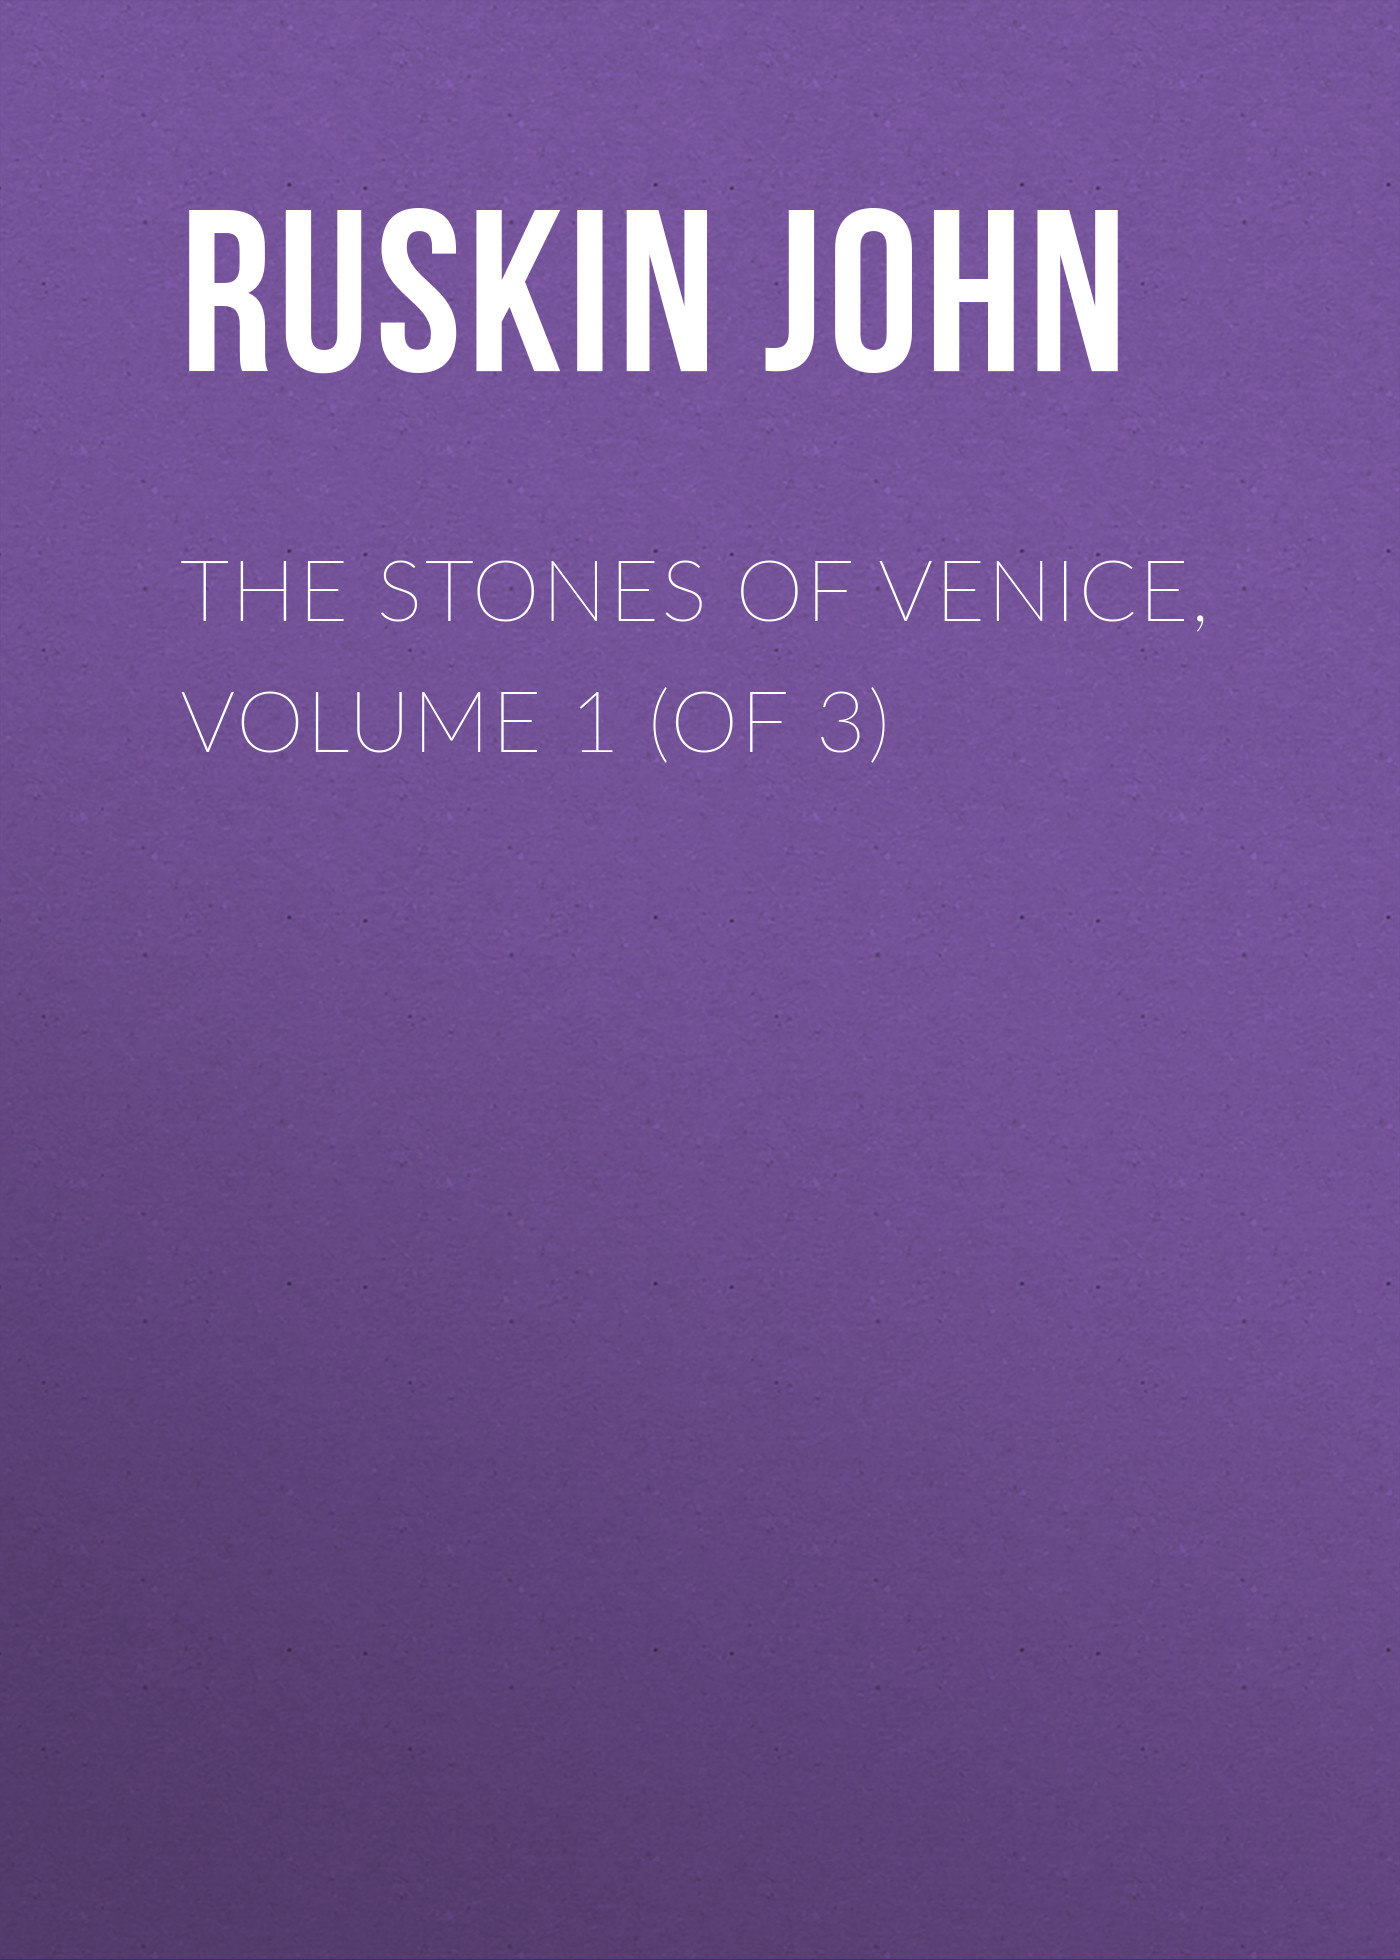 лучшая цена Ruskin John The Stones of Venice, Volume 1 (of 3)